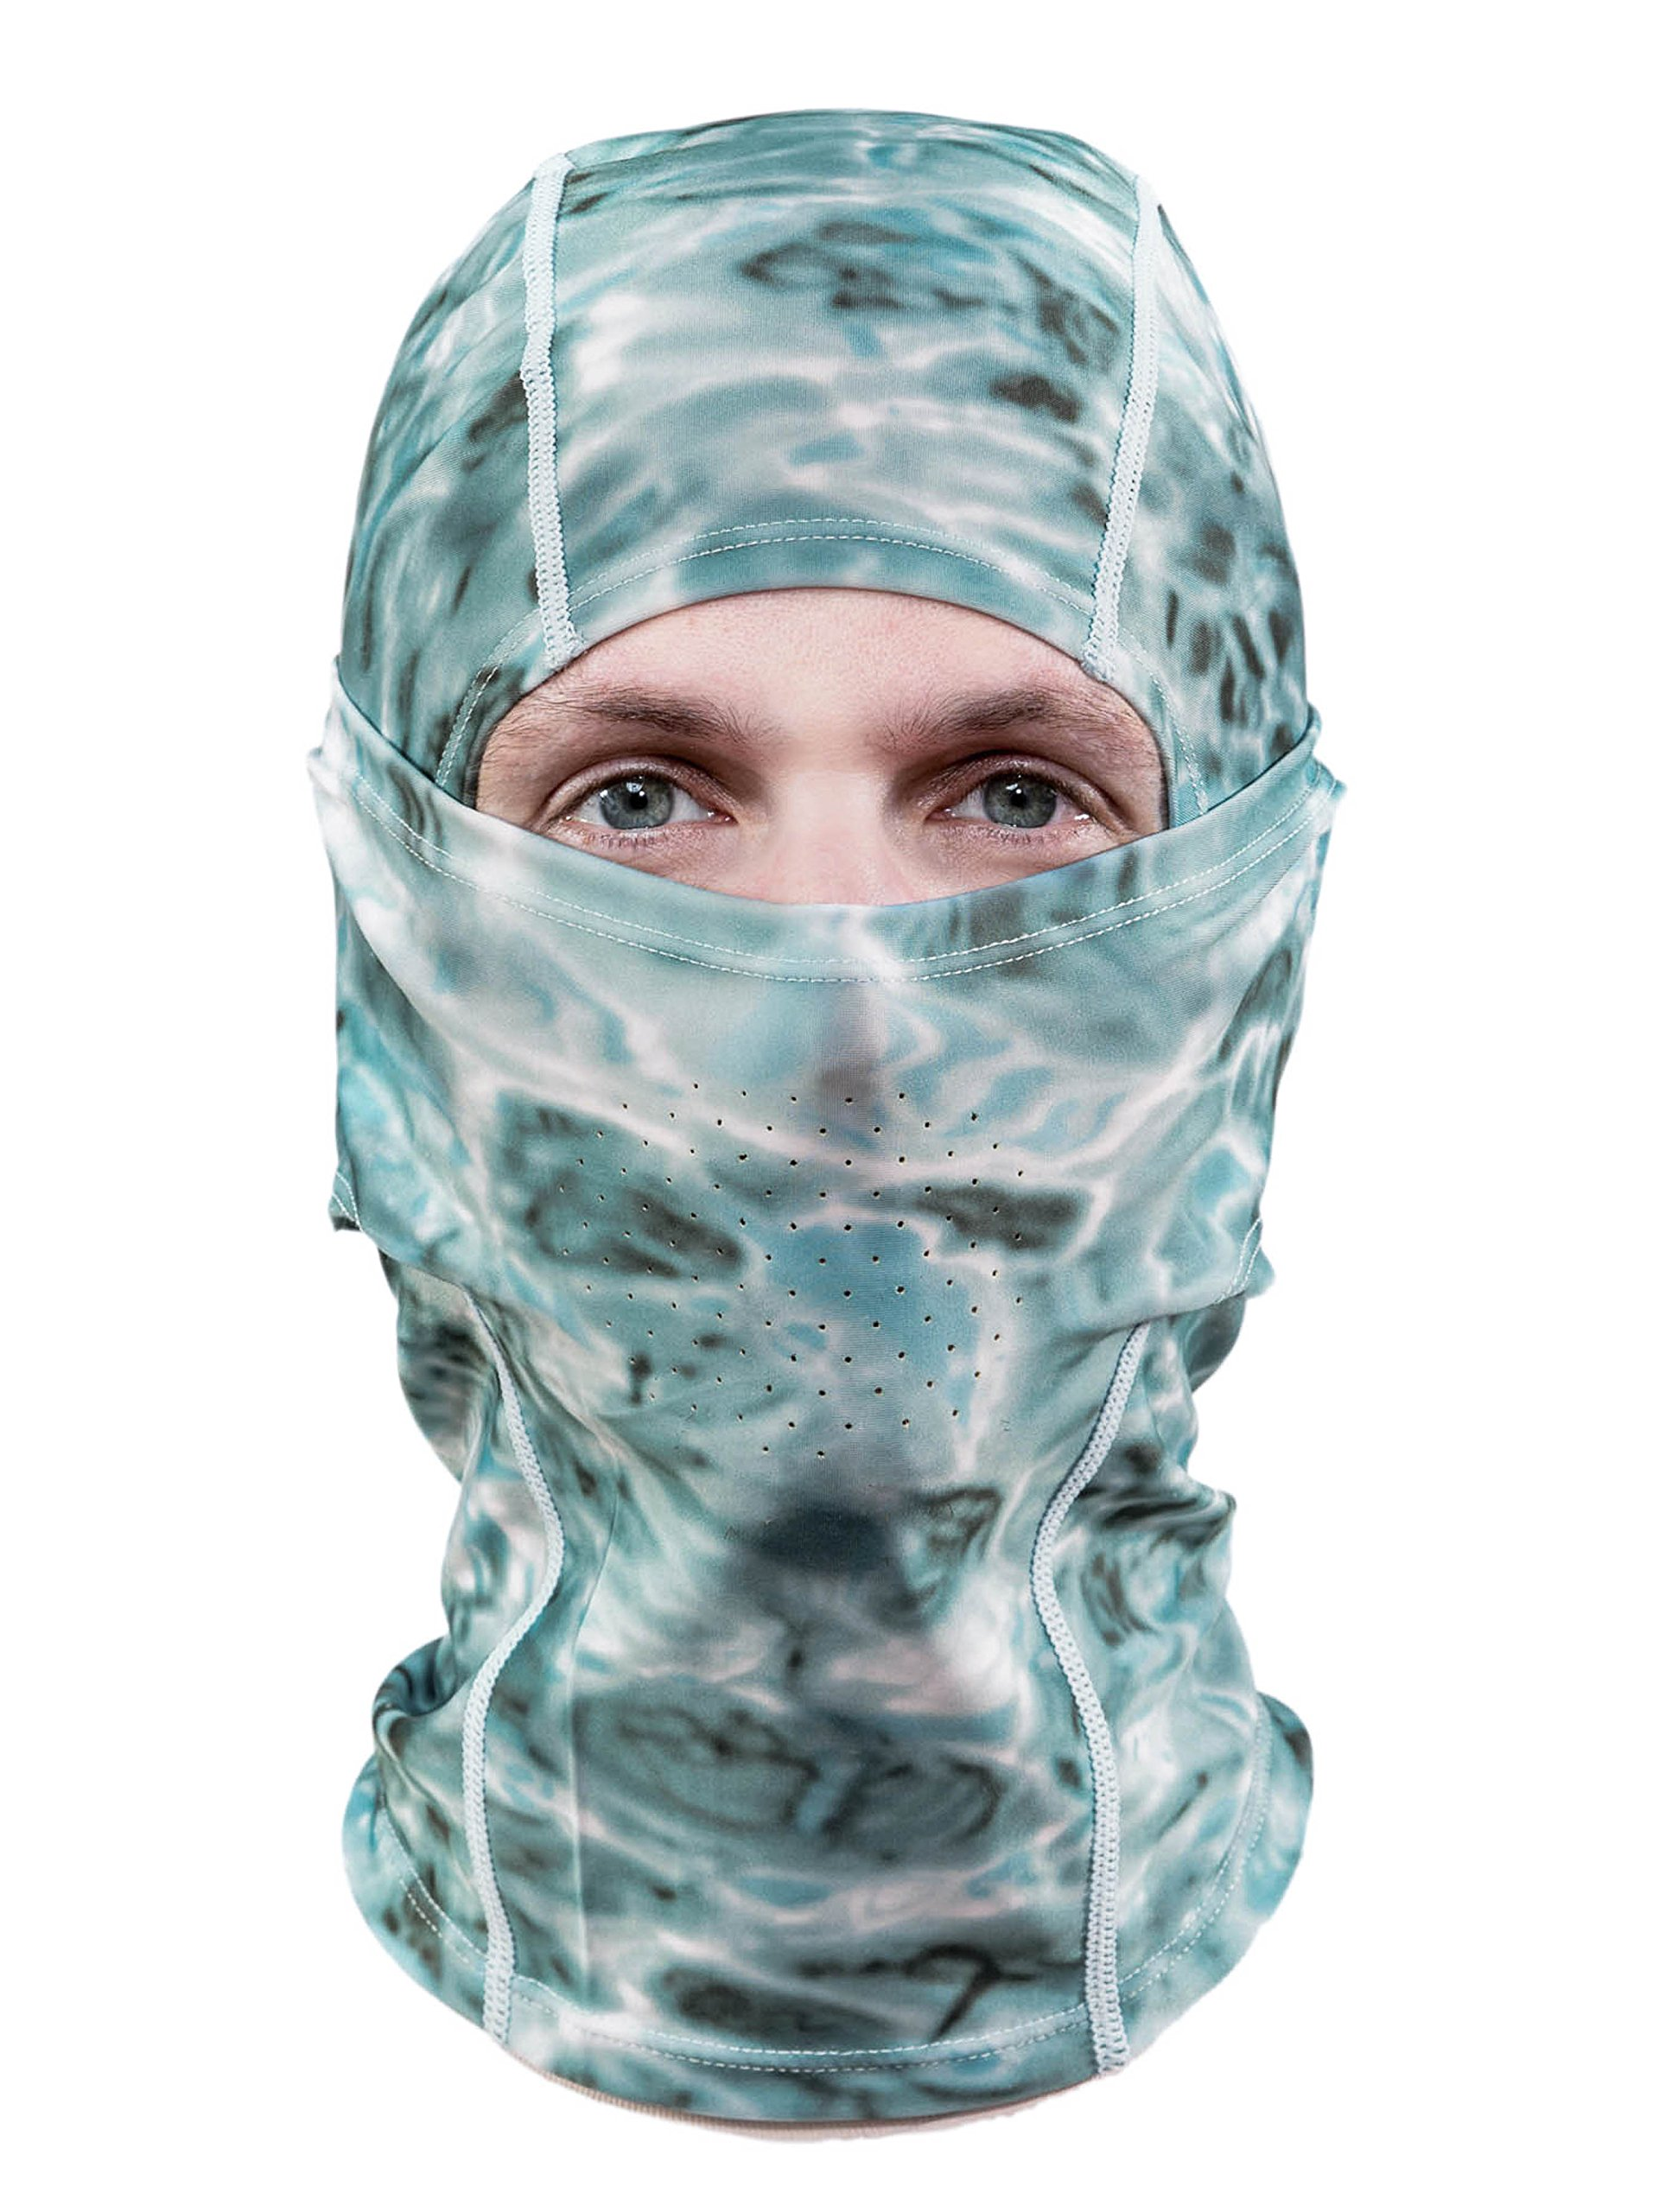 Aqua Design: Cool Weather Mens Face Mask UPF50+ Sun Wind Helmet Liner Balaclava: Aqua Sky by Aqua Design (Image #1)